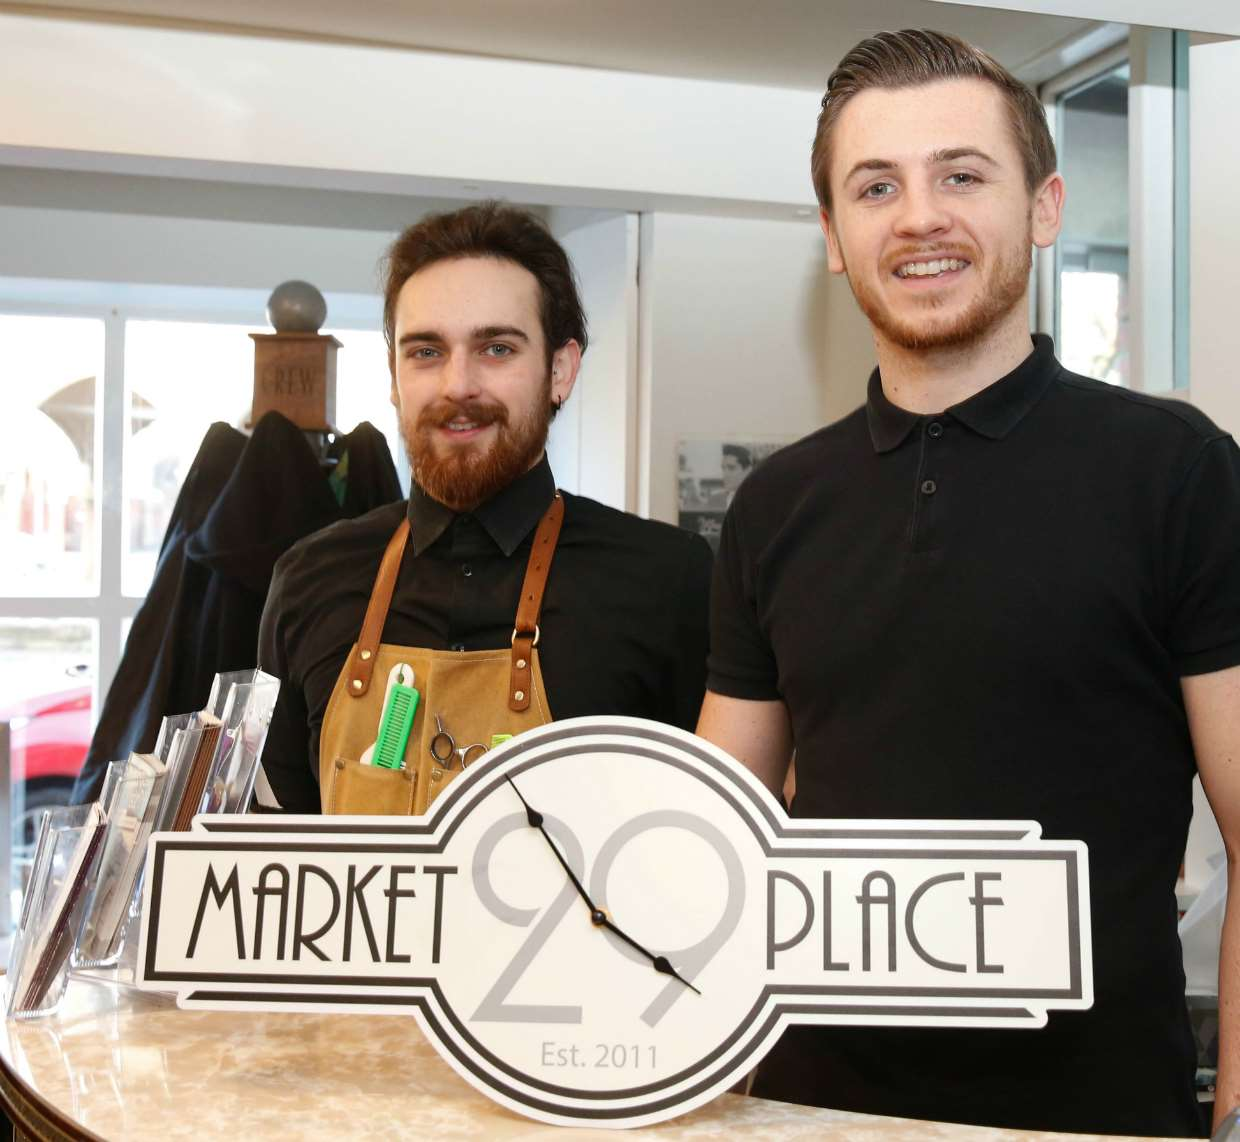 Two of the staff at 29 Market Place, Bingham, which provides hair-cutting and grooming services